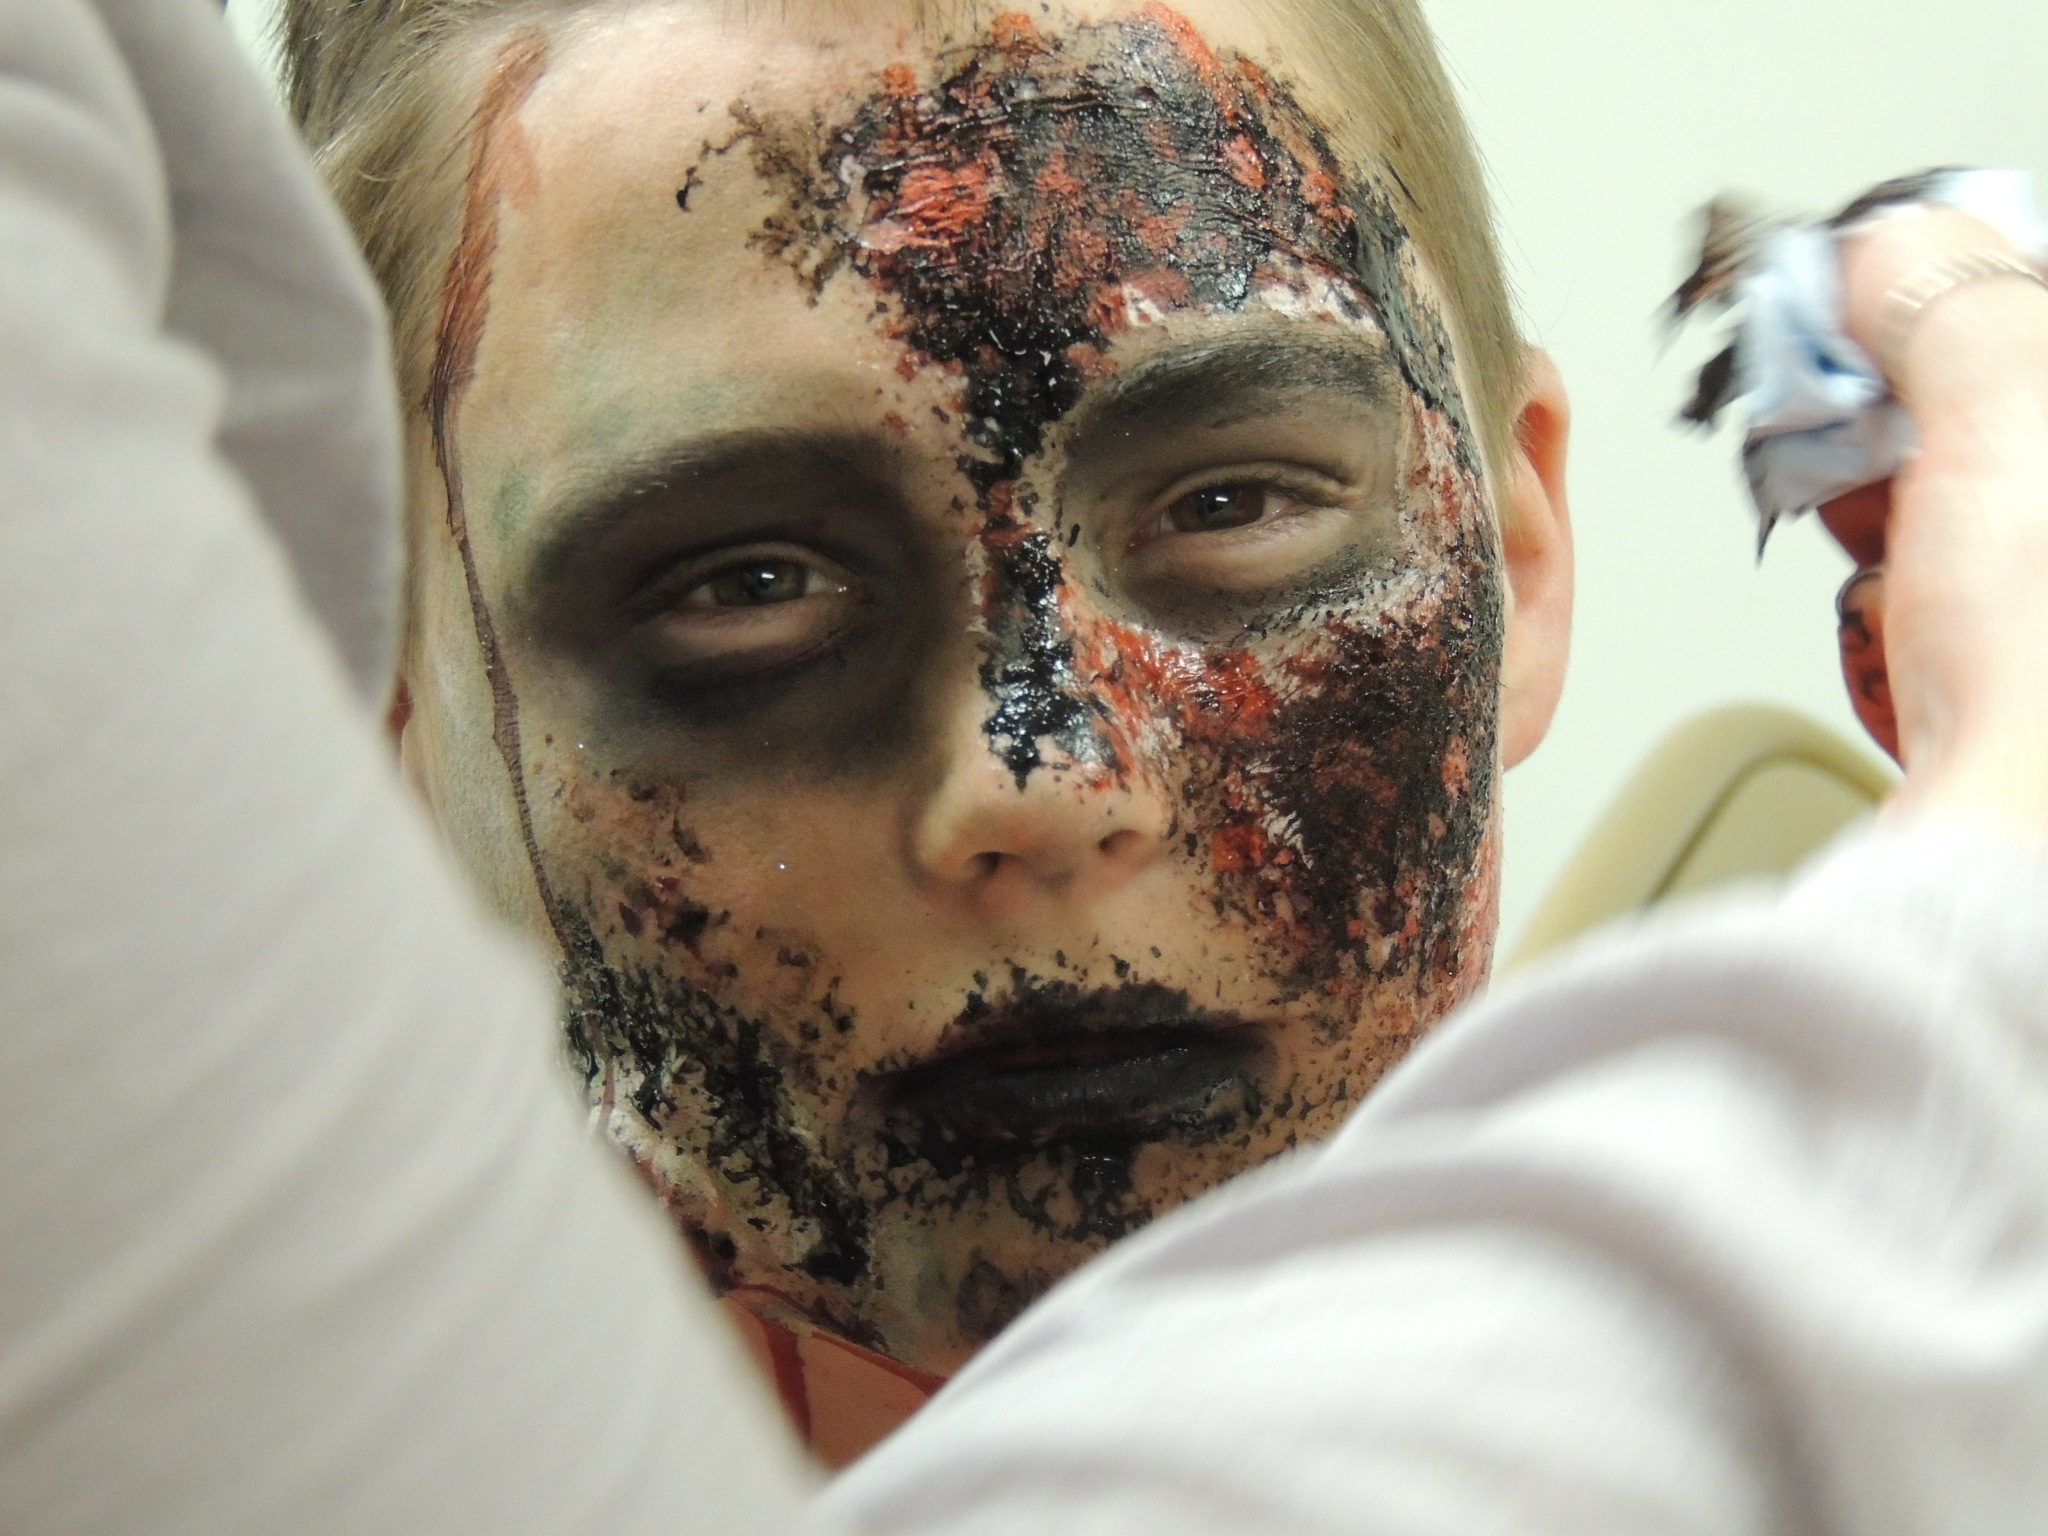 Haunted house makeup by Shadow456